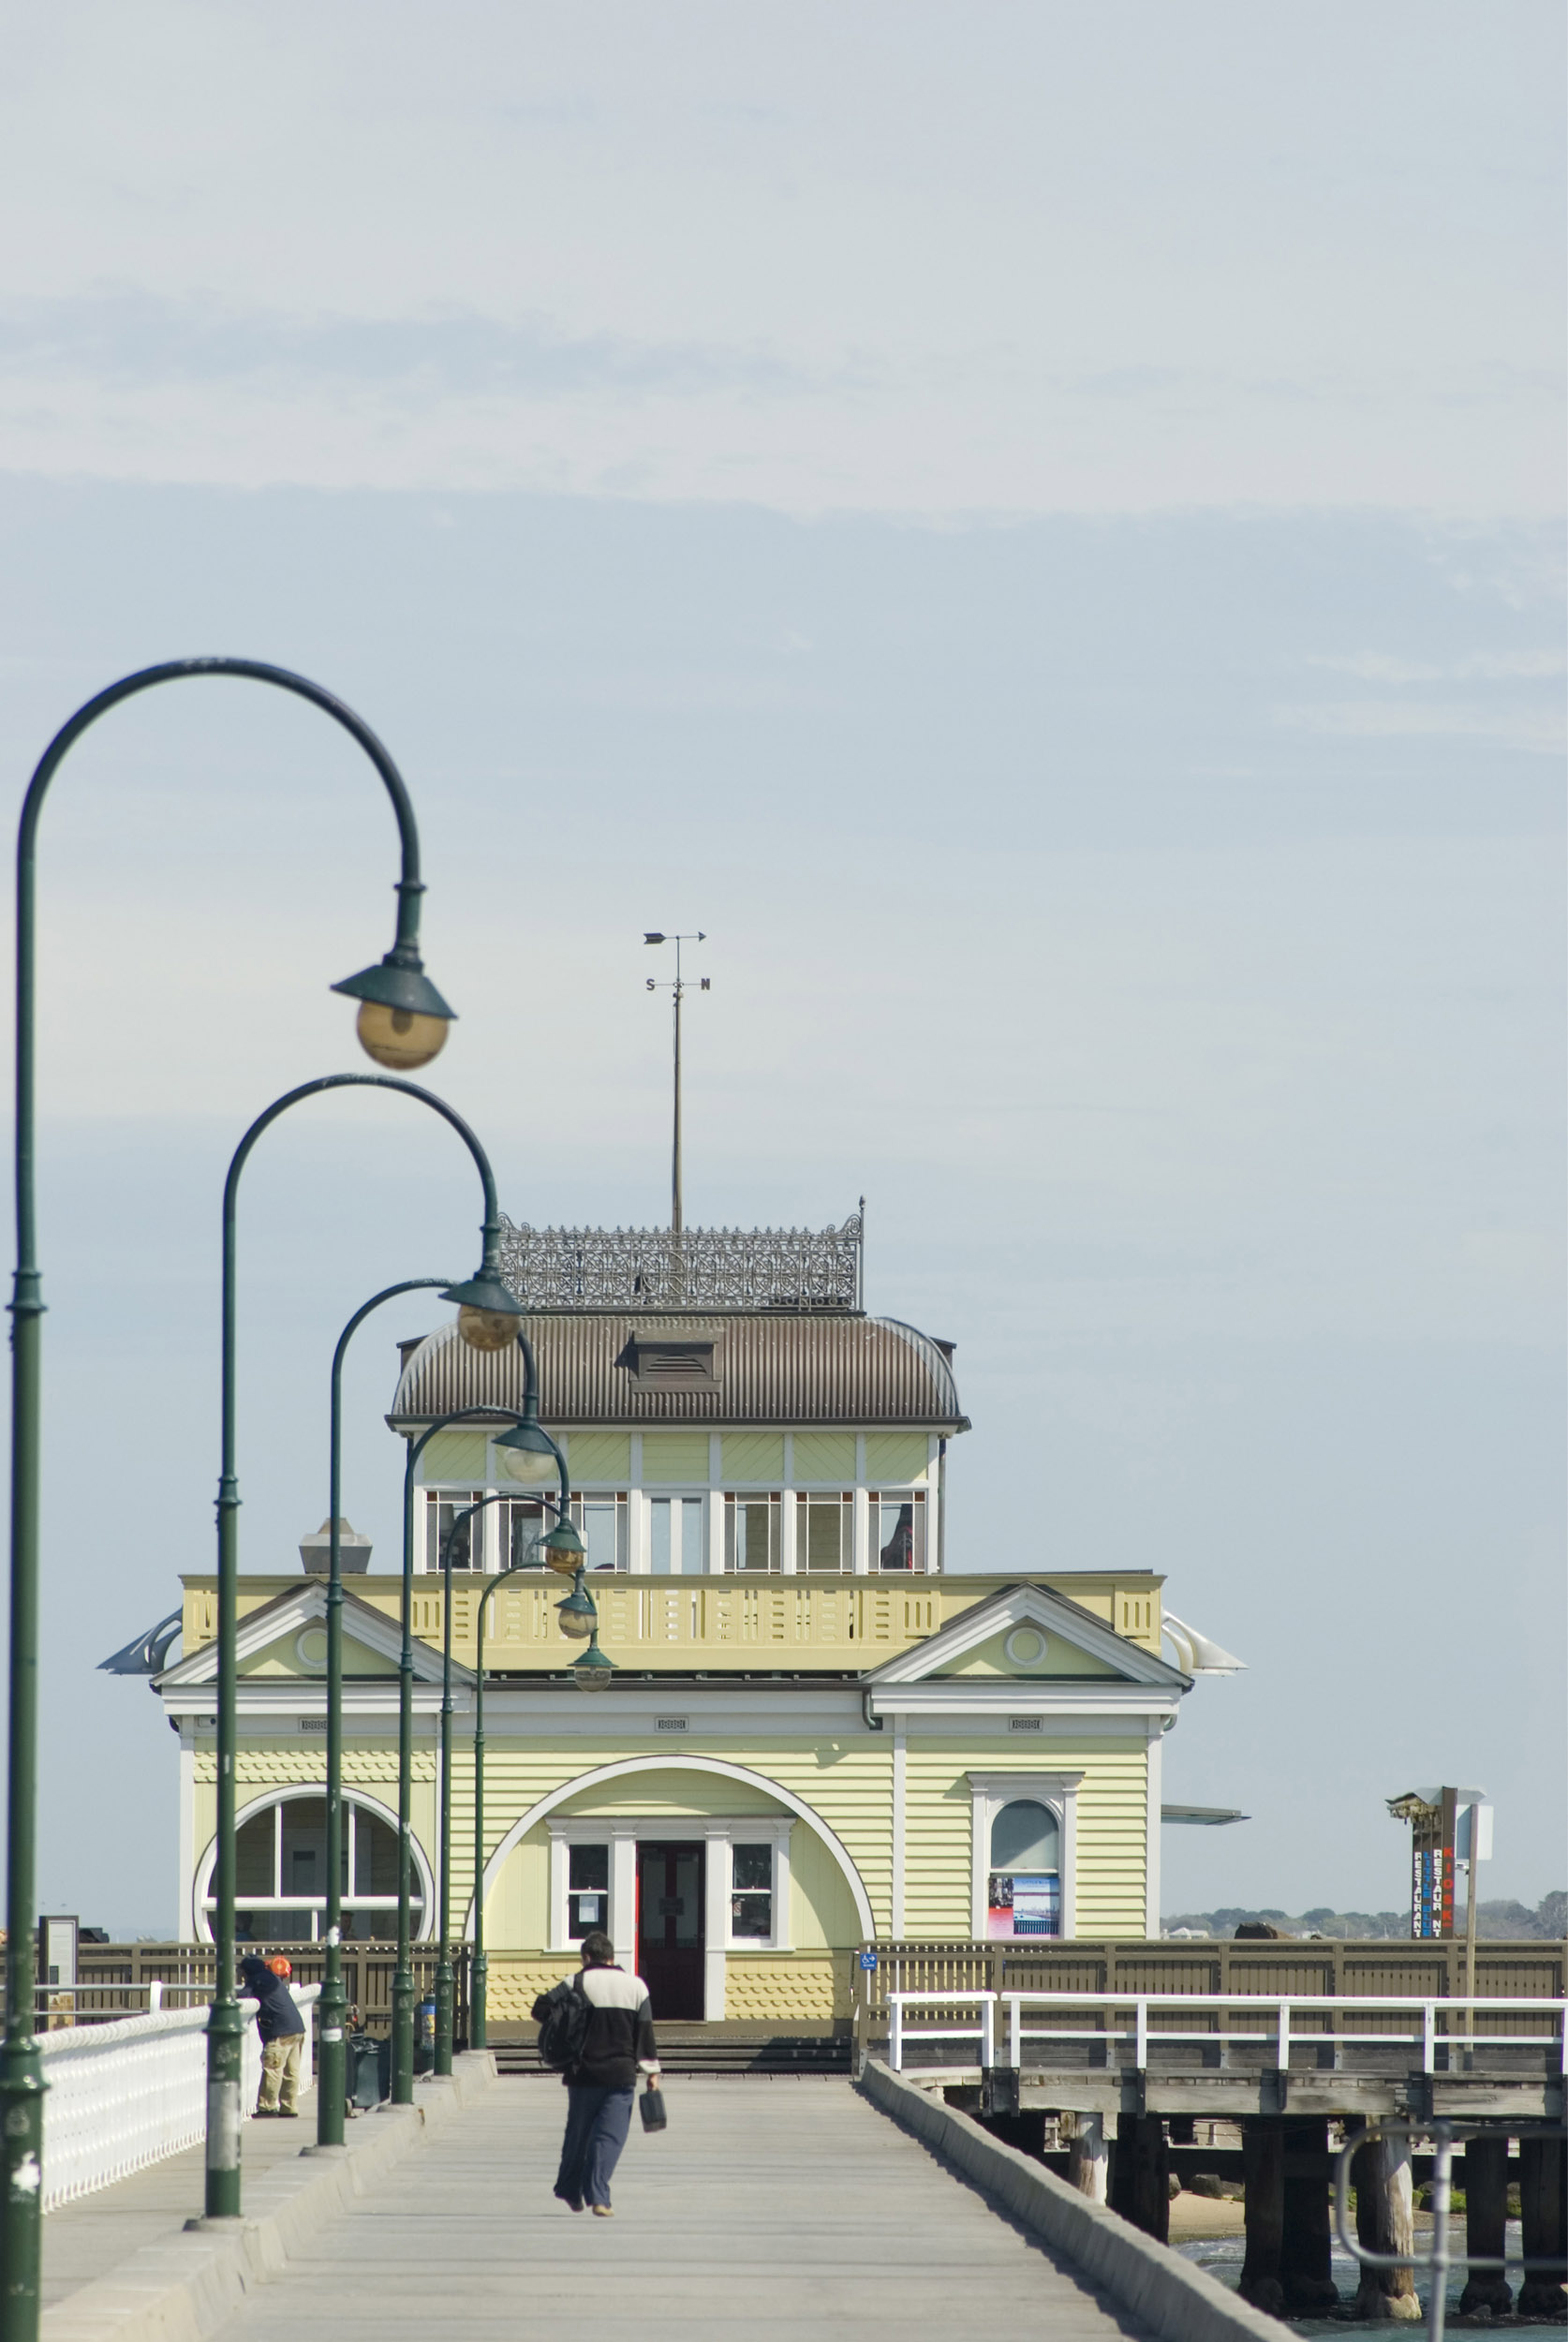 A historic, old fashioned building and hanging light poles at the Saint Kilda Pier in Victoria, Australia.